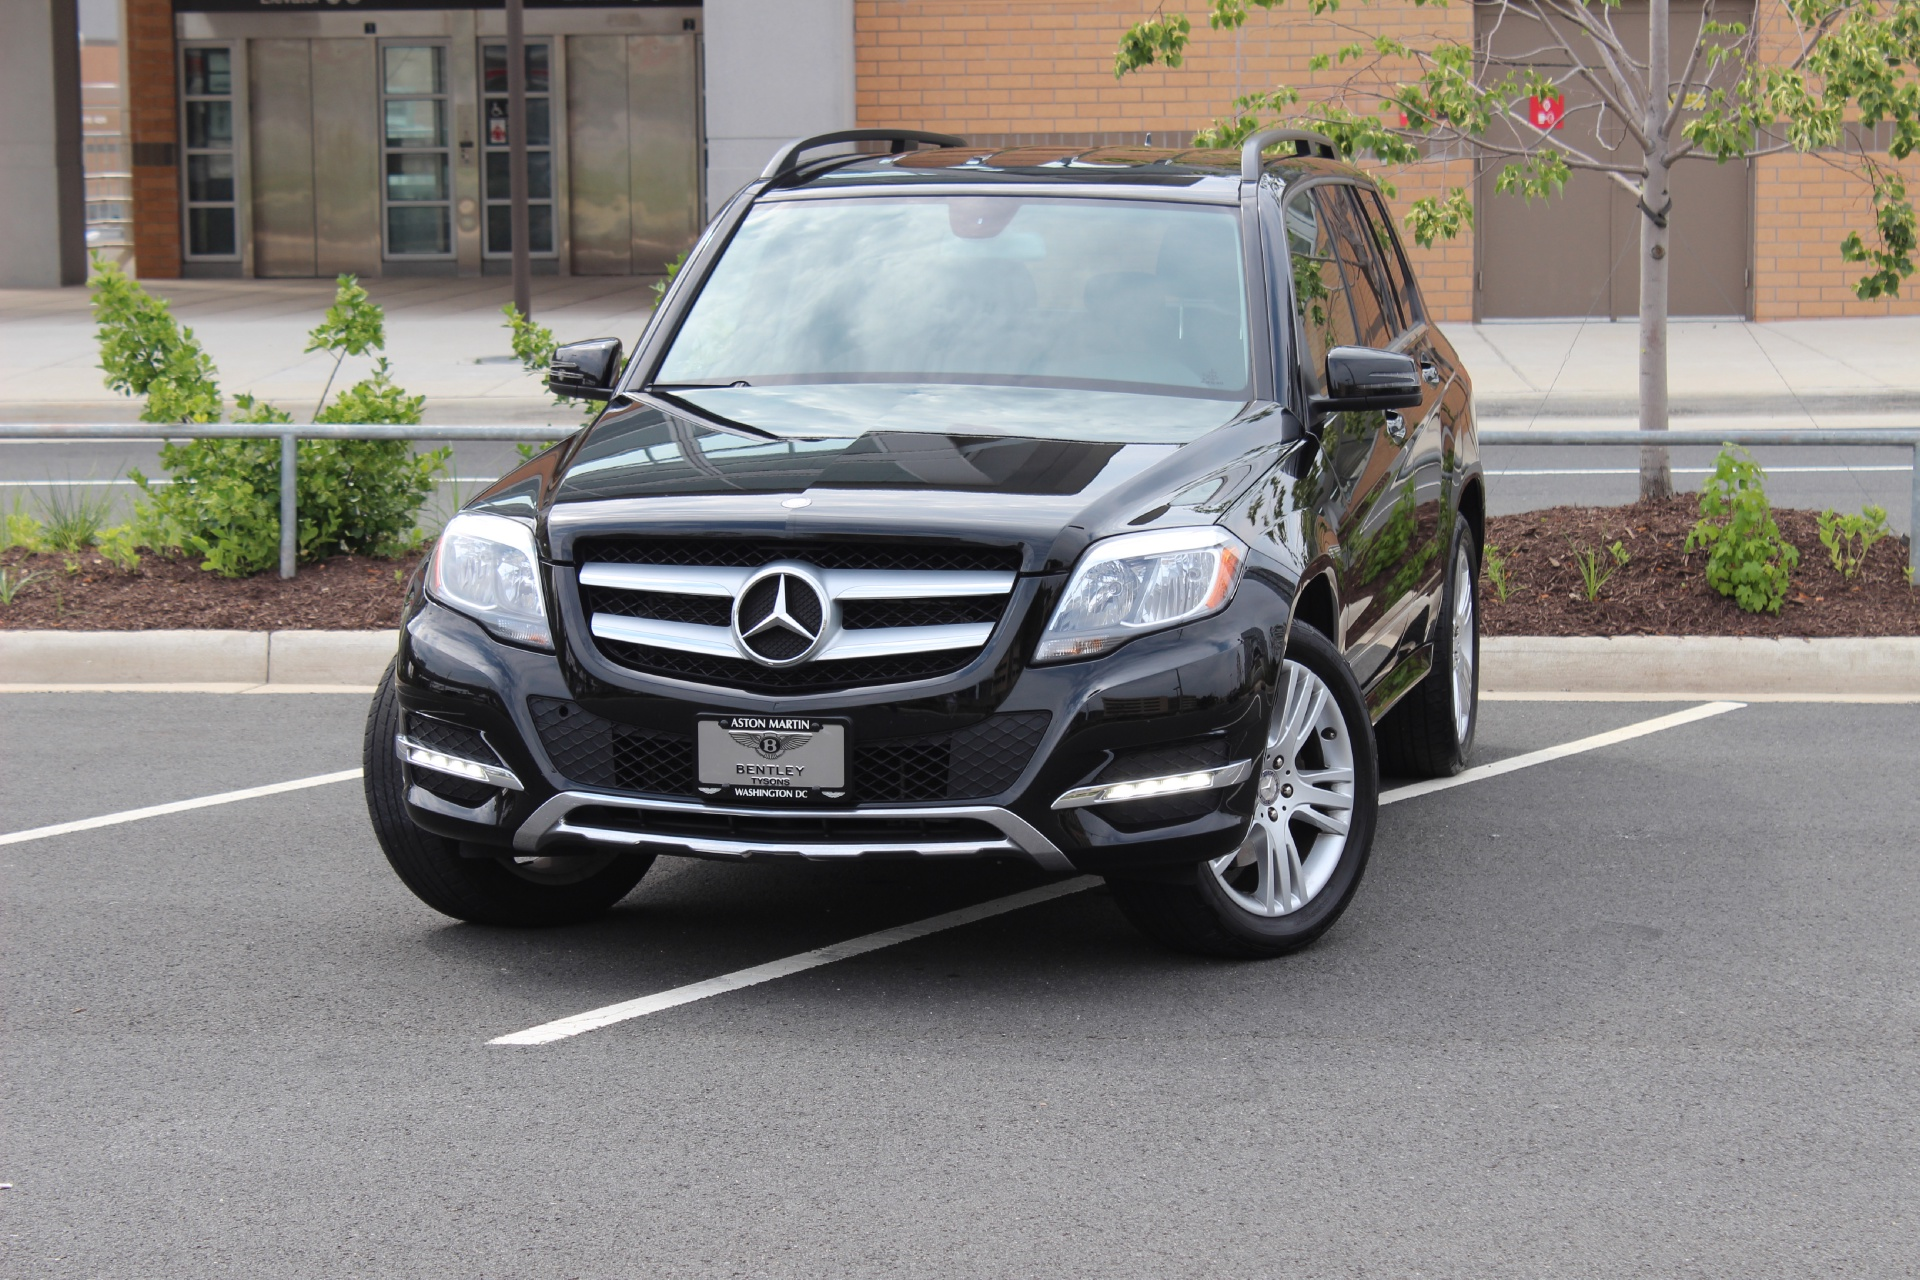 2013 mercedes benz glk glk350 4matic stock p046021 for sale near vienna va va mercedes benz. Black Bedroom Furniture Sets. Home Design Ideas